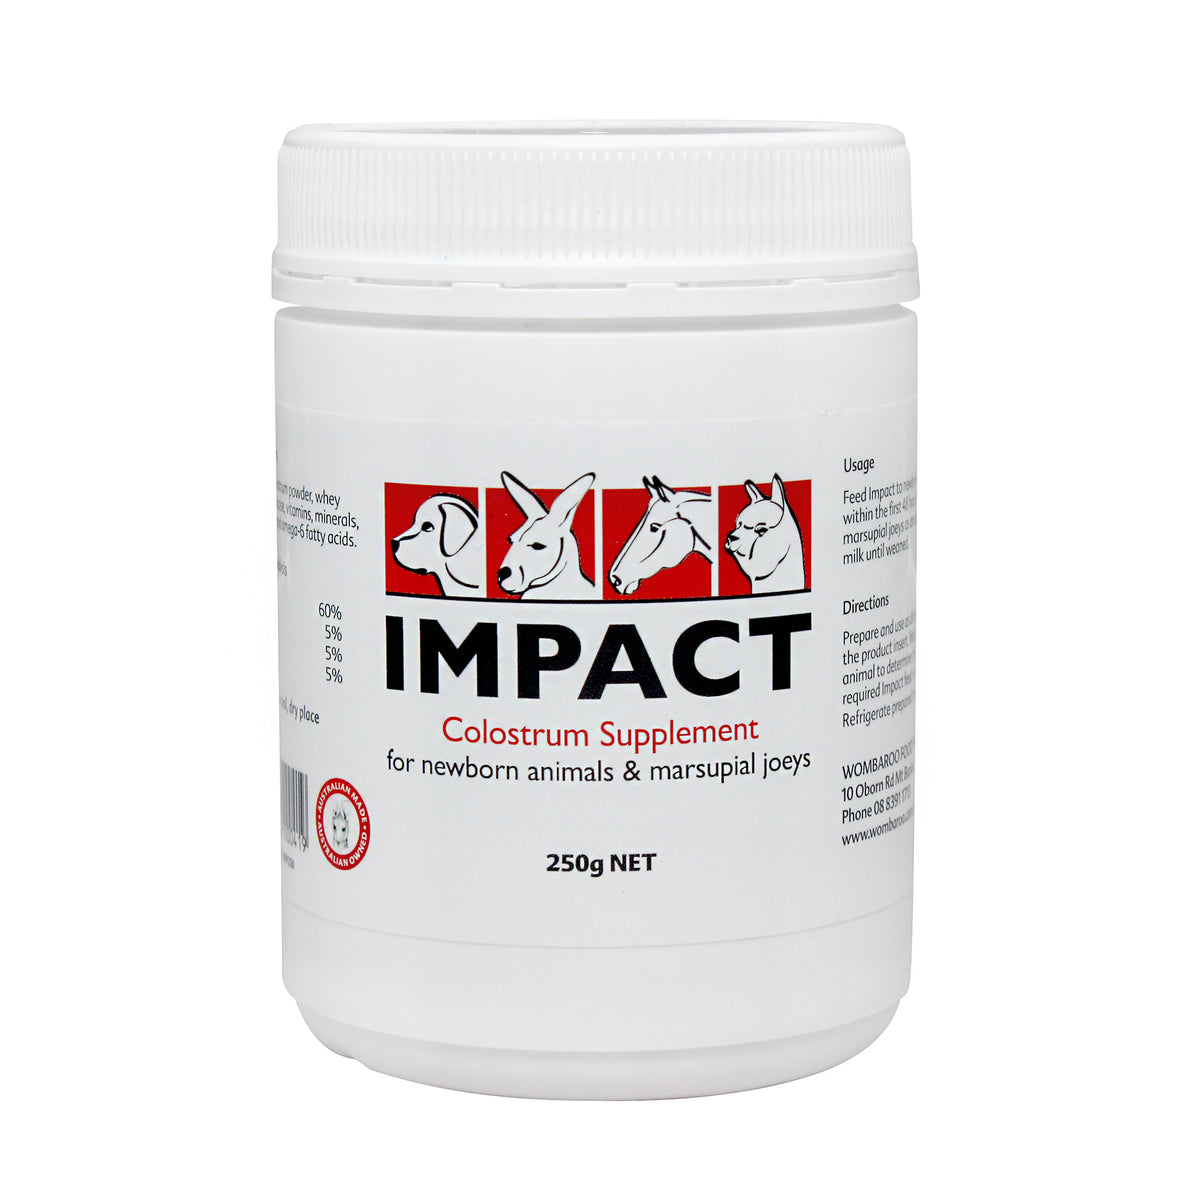 Impact Colostrum